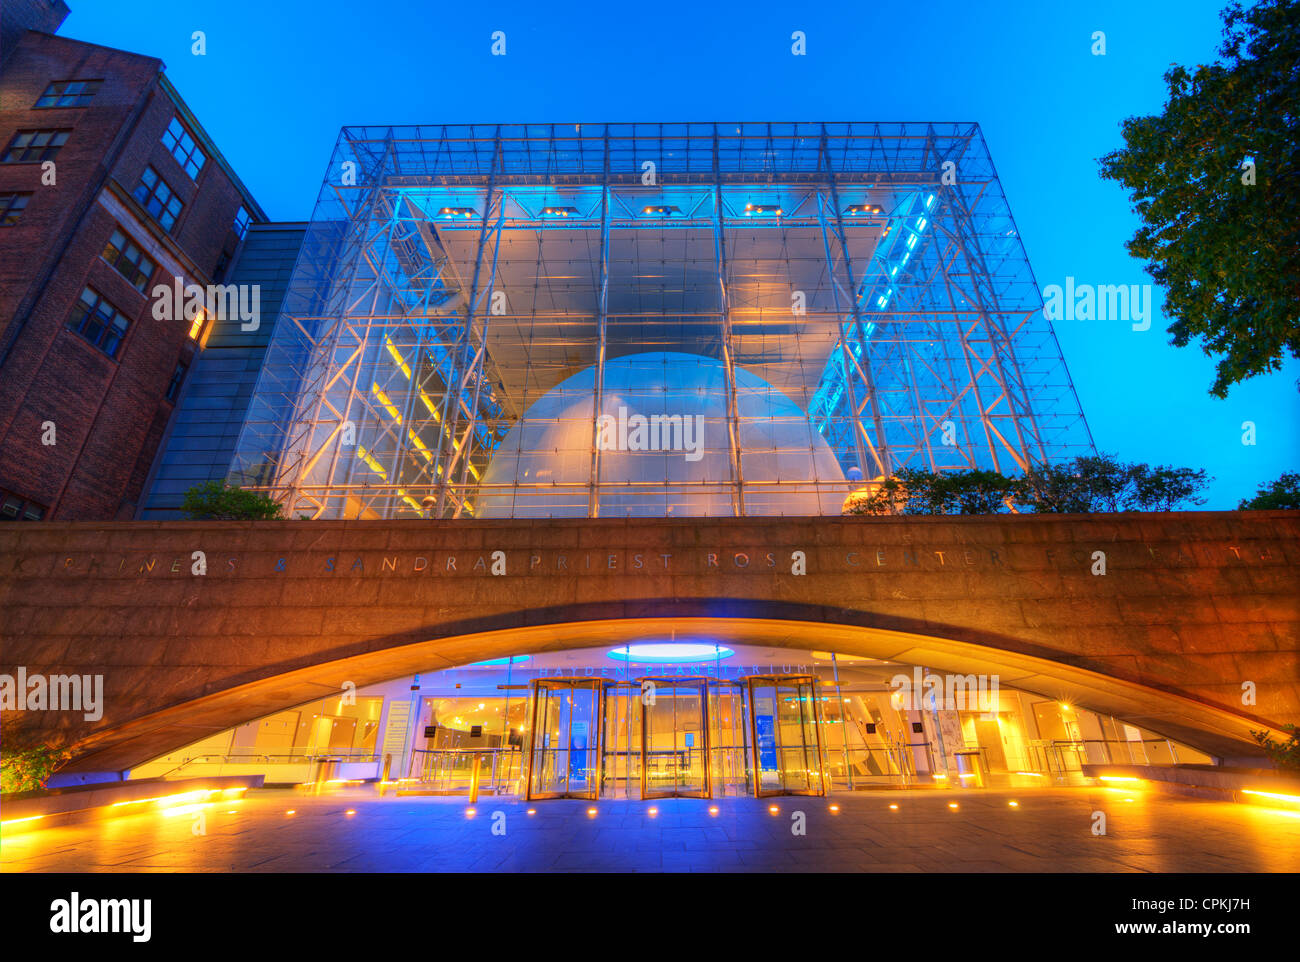 Hayden Planetarium, part of the Rose Center for Earth and Space of the American Museum of Natural History in New - Stock Image